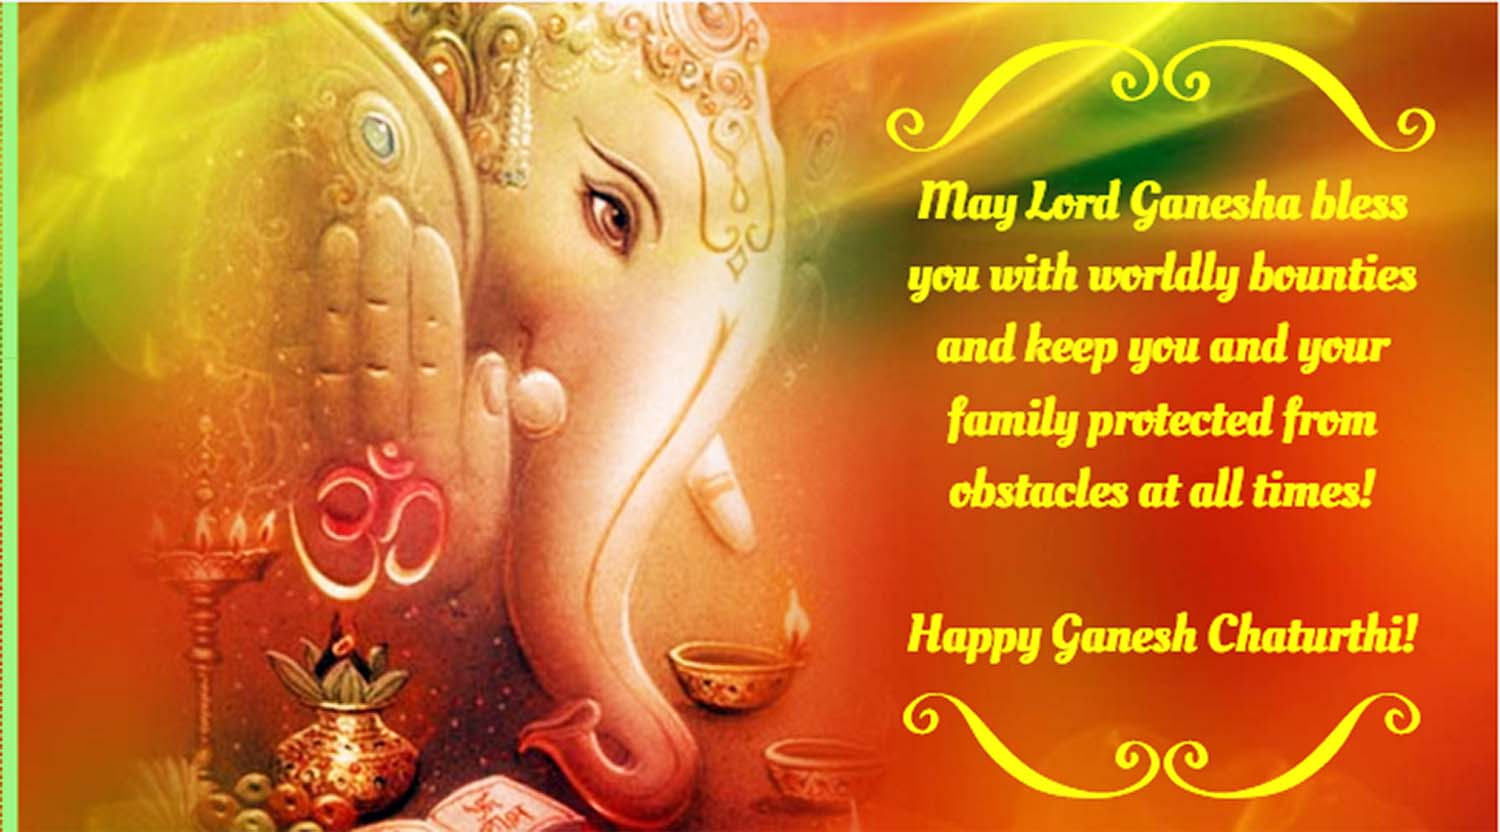 Happy Vinayaka chaturthi greetings